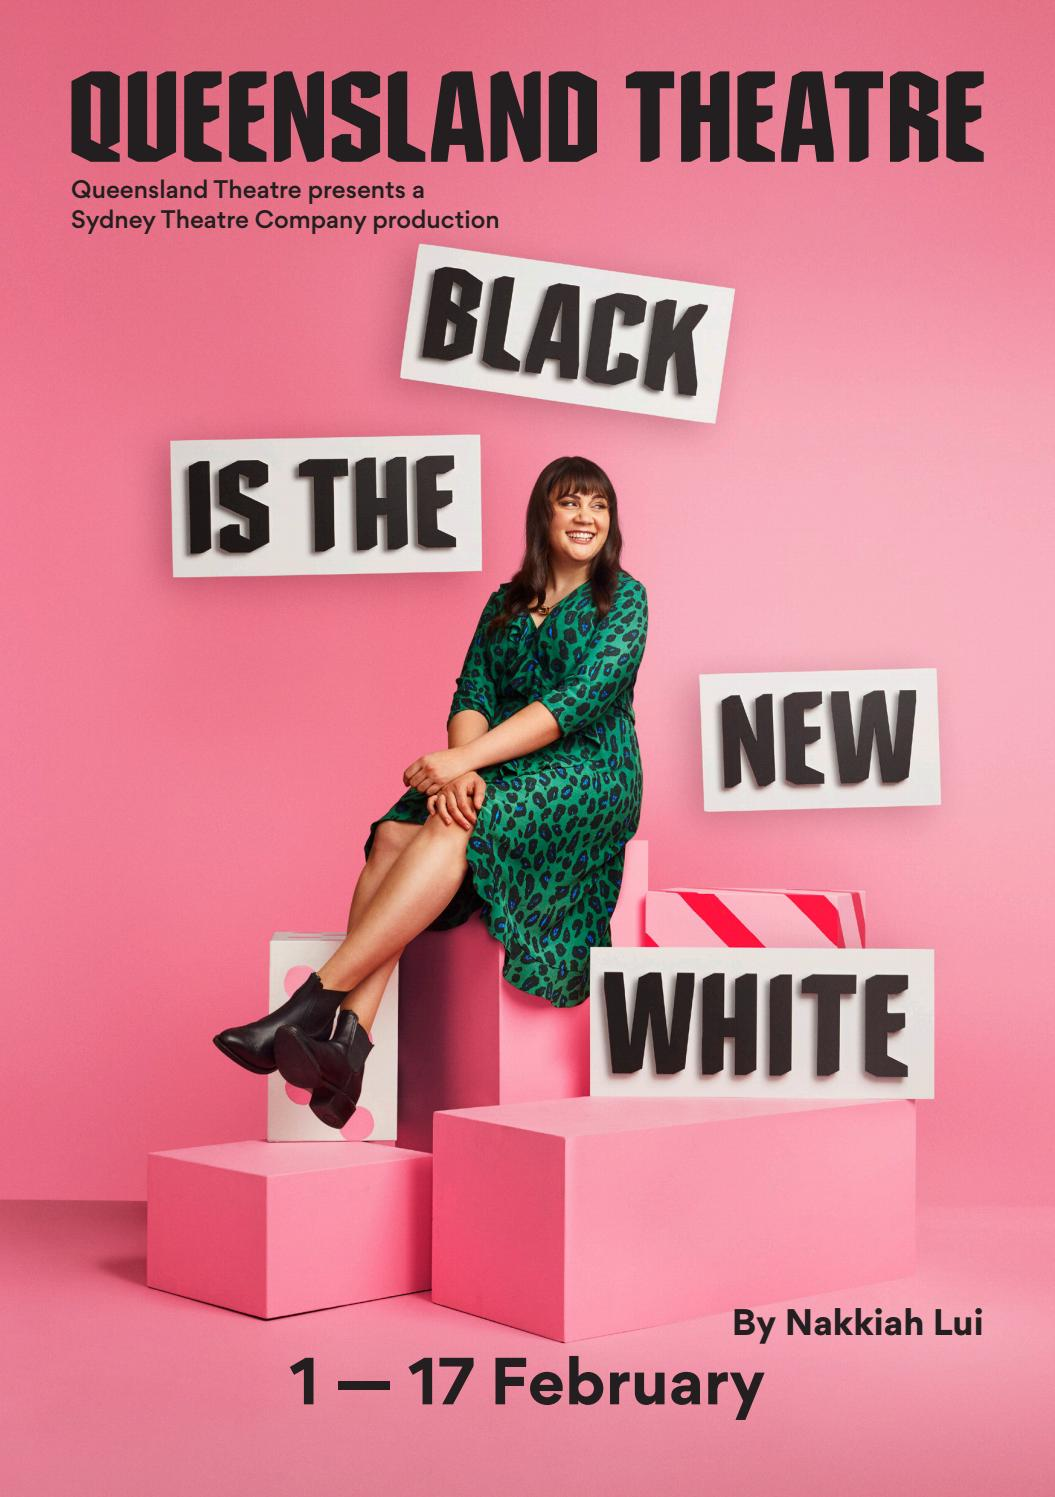 Black Is The New White By Queensland Theatre Issuu